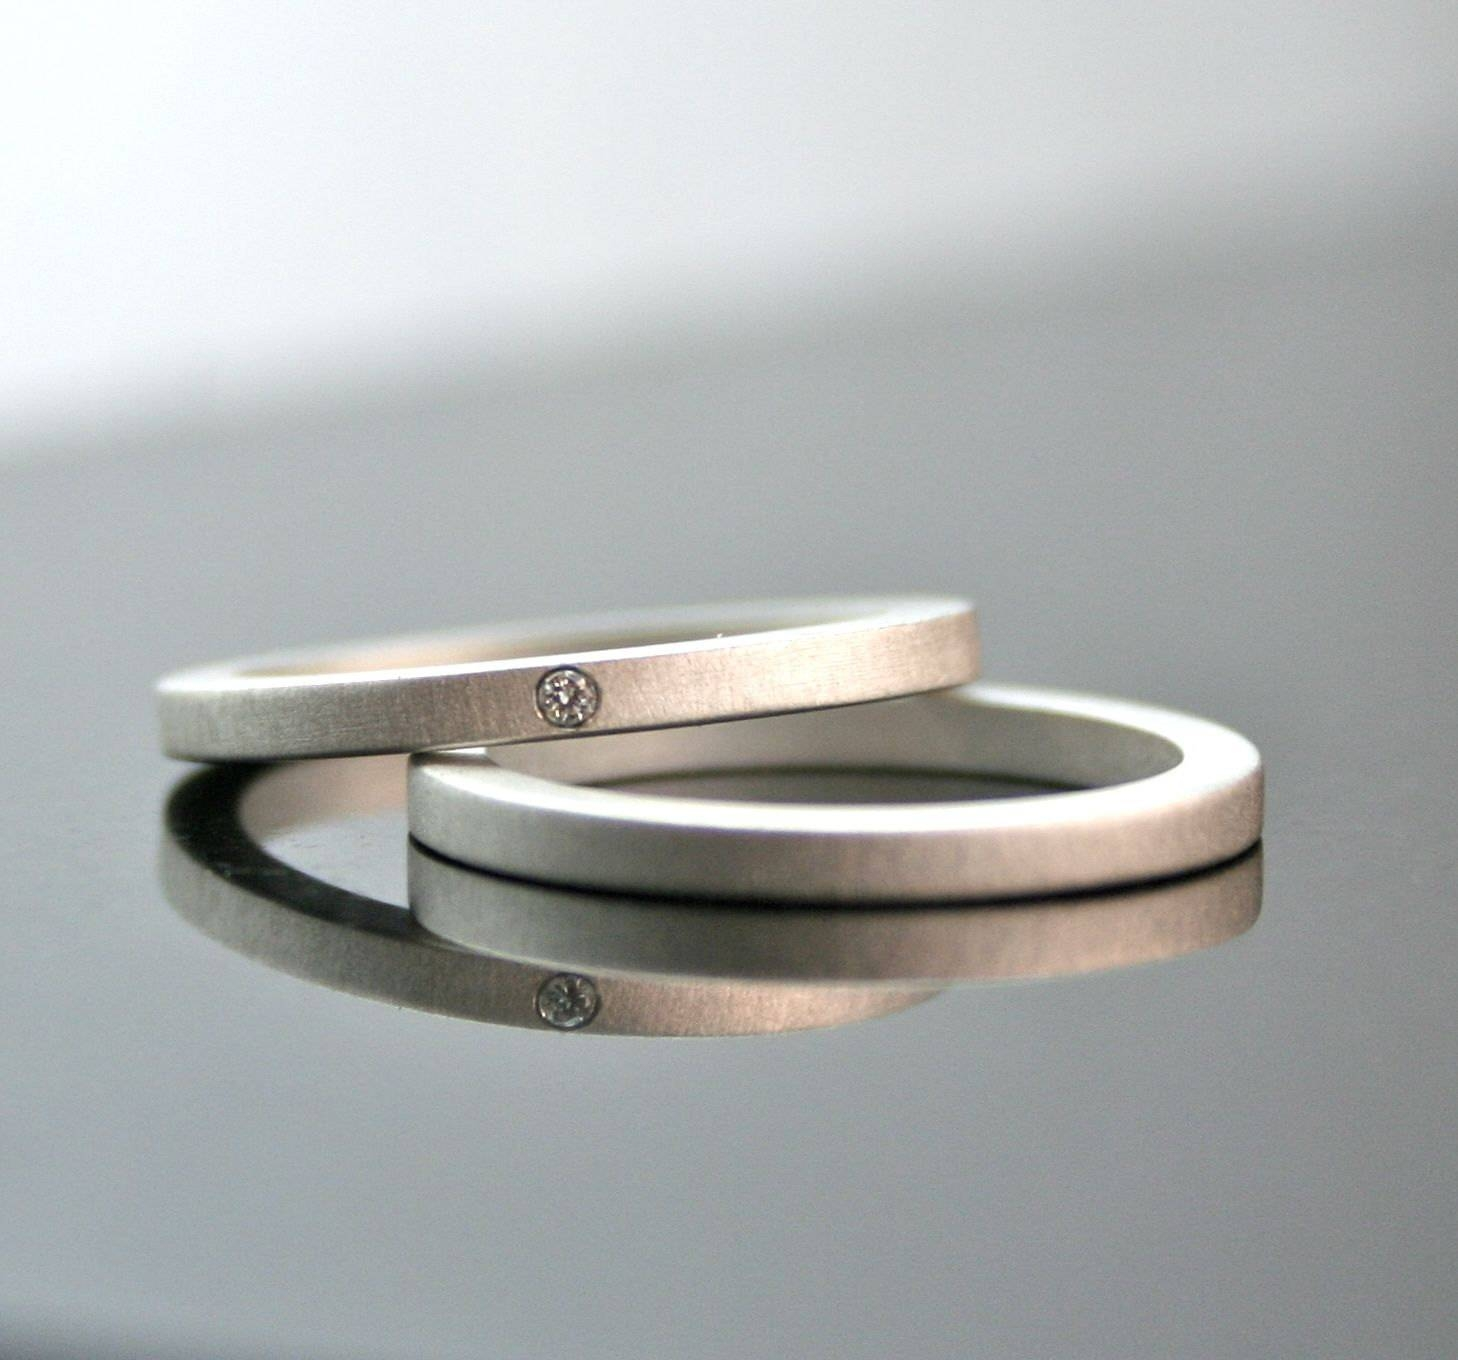 bands related post rings of simple the single wedding beautiful and for unique diamond small band engagement bride